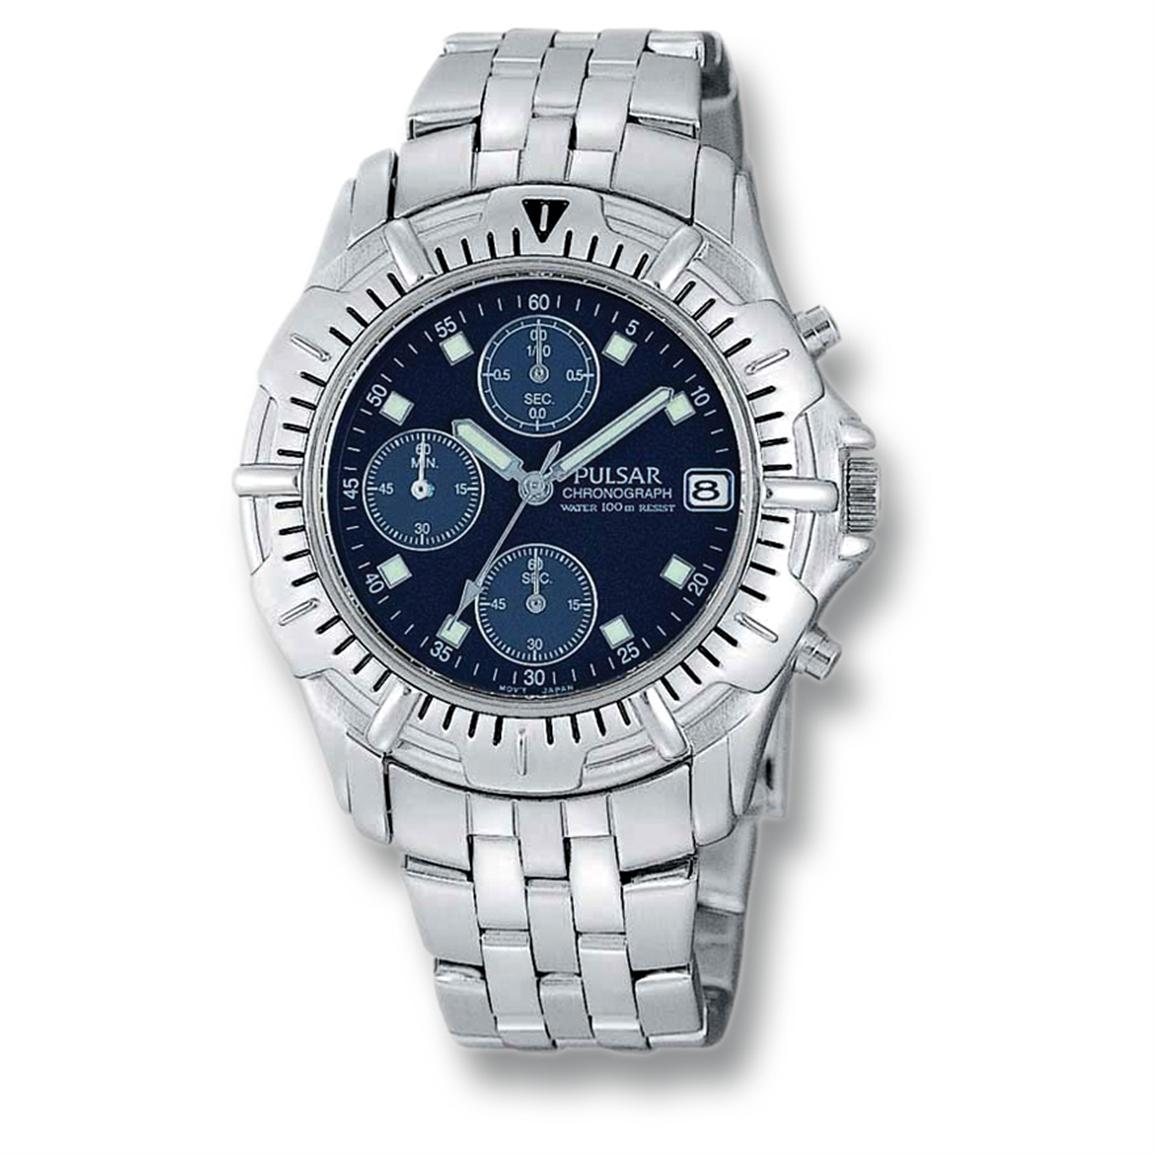 Men's Pulsar® Chronograph Watch, Silvertone